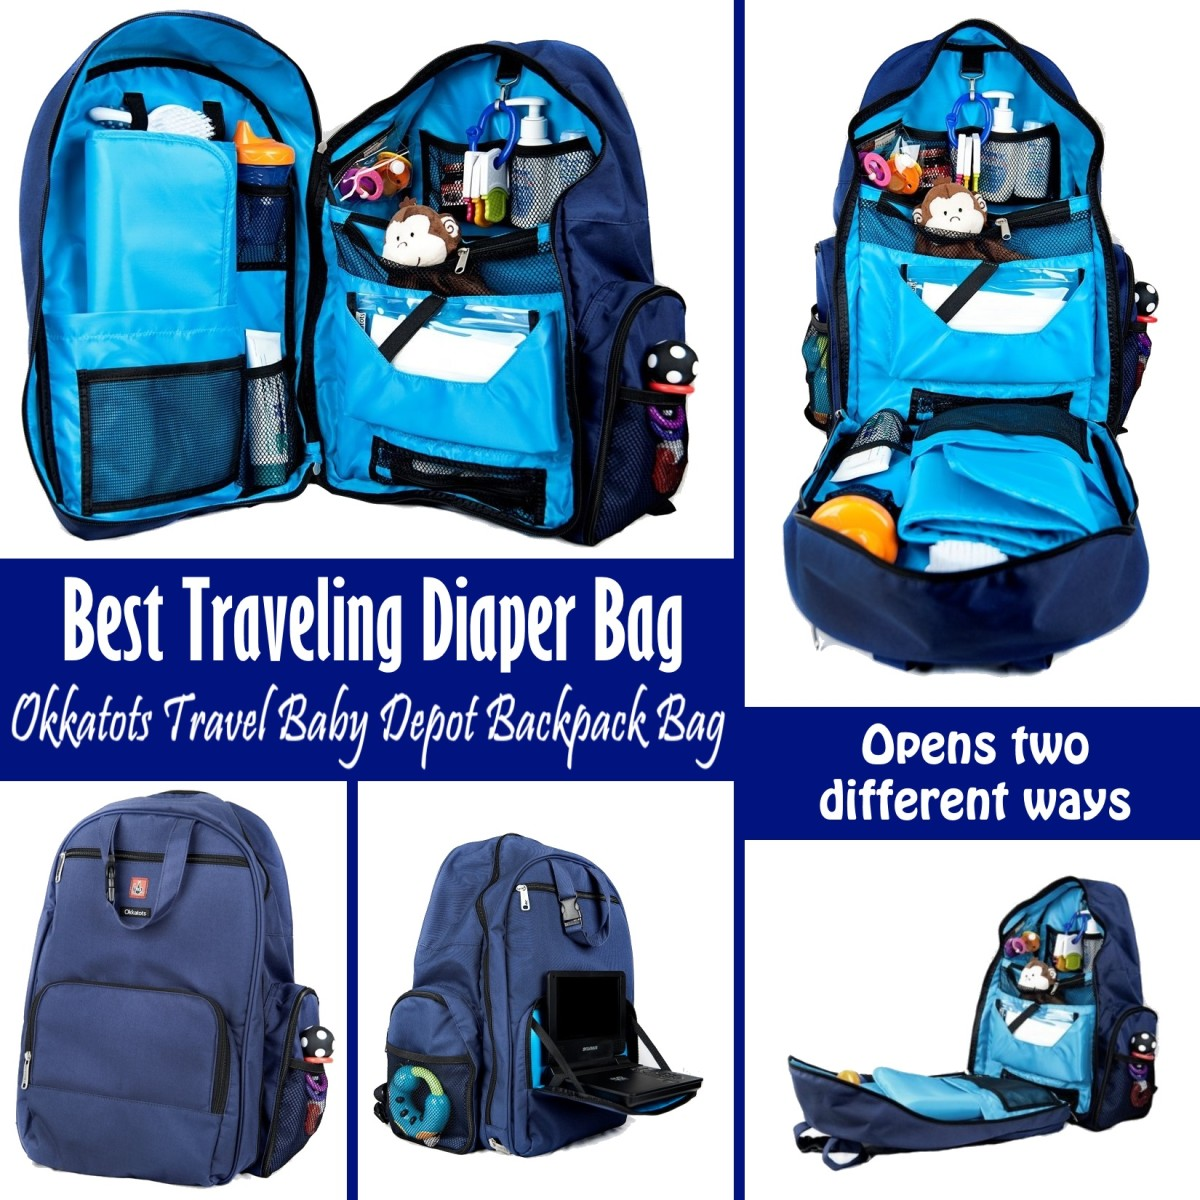 Best Traveling Diaper Bag